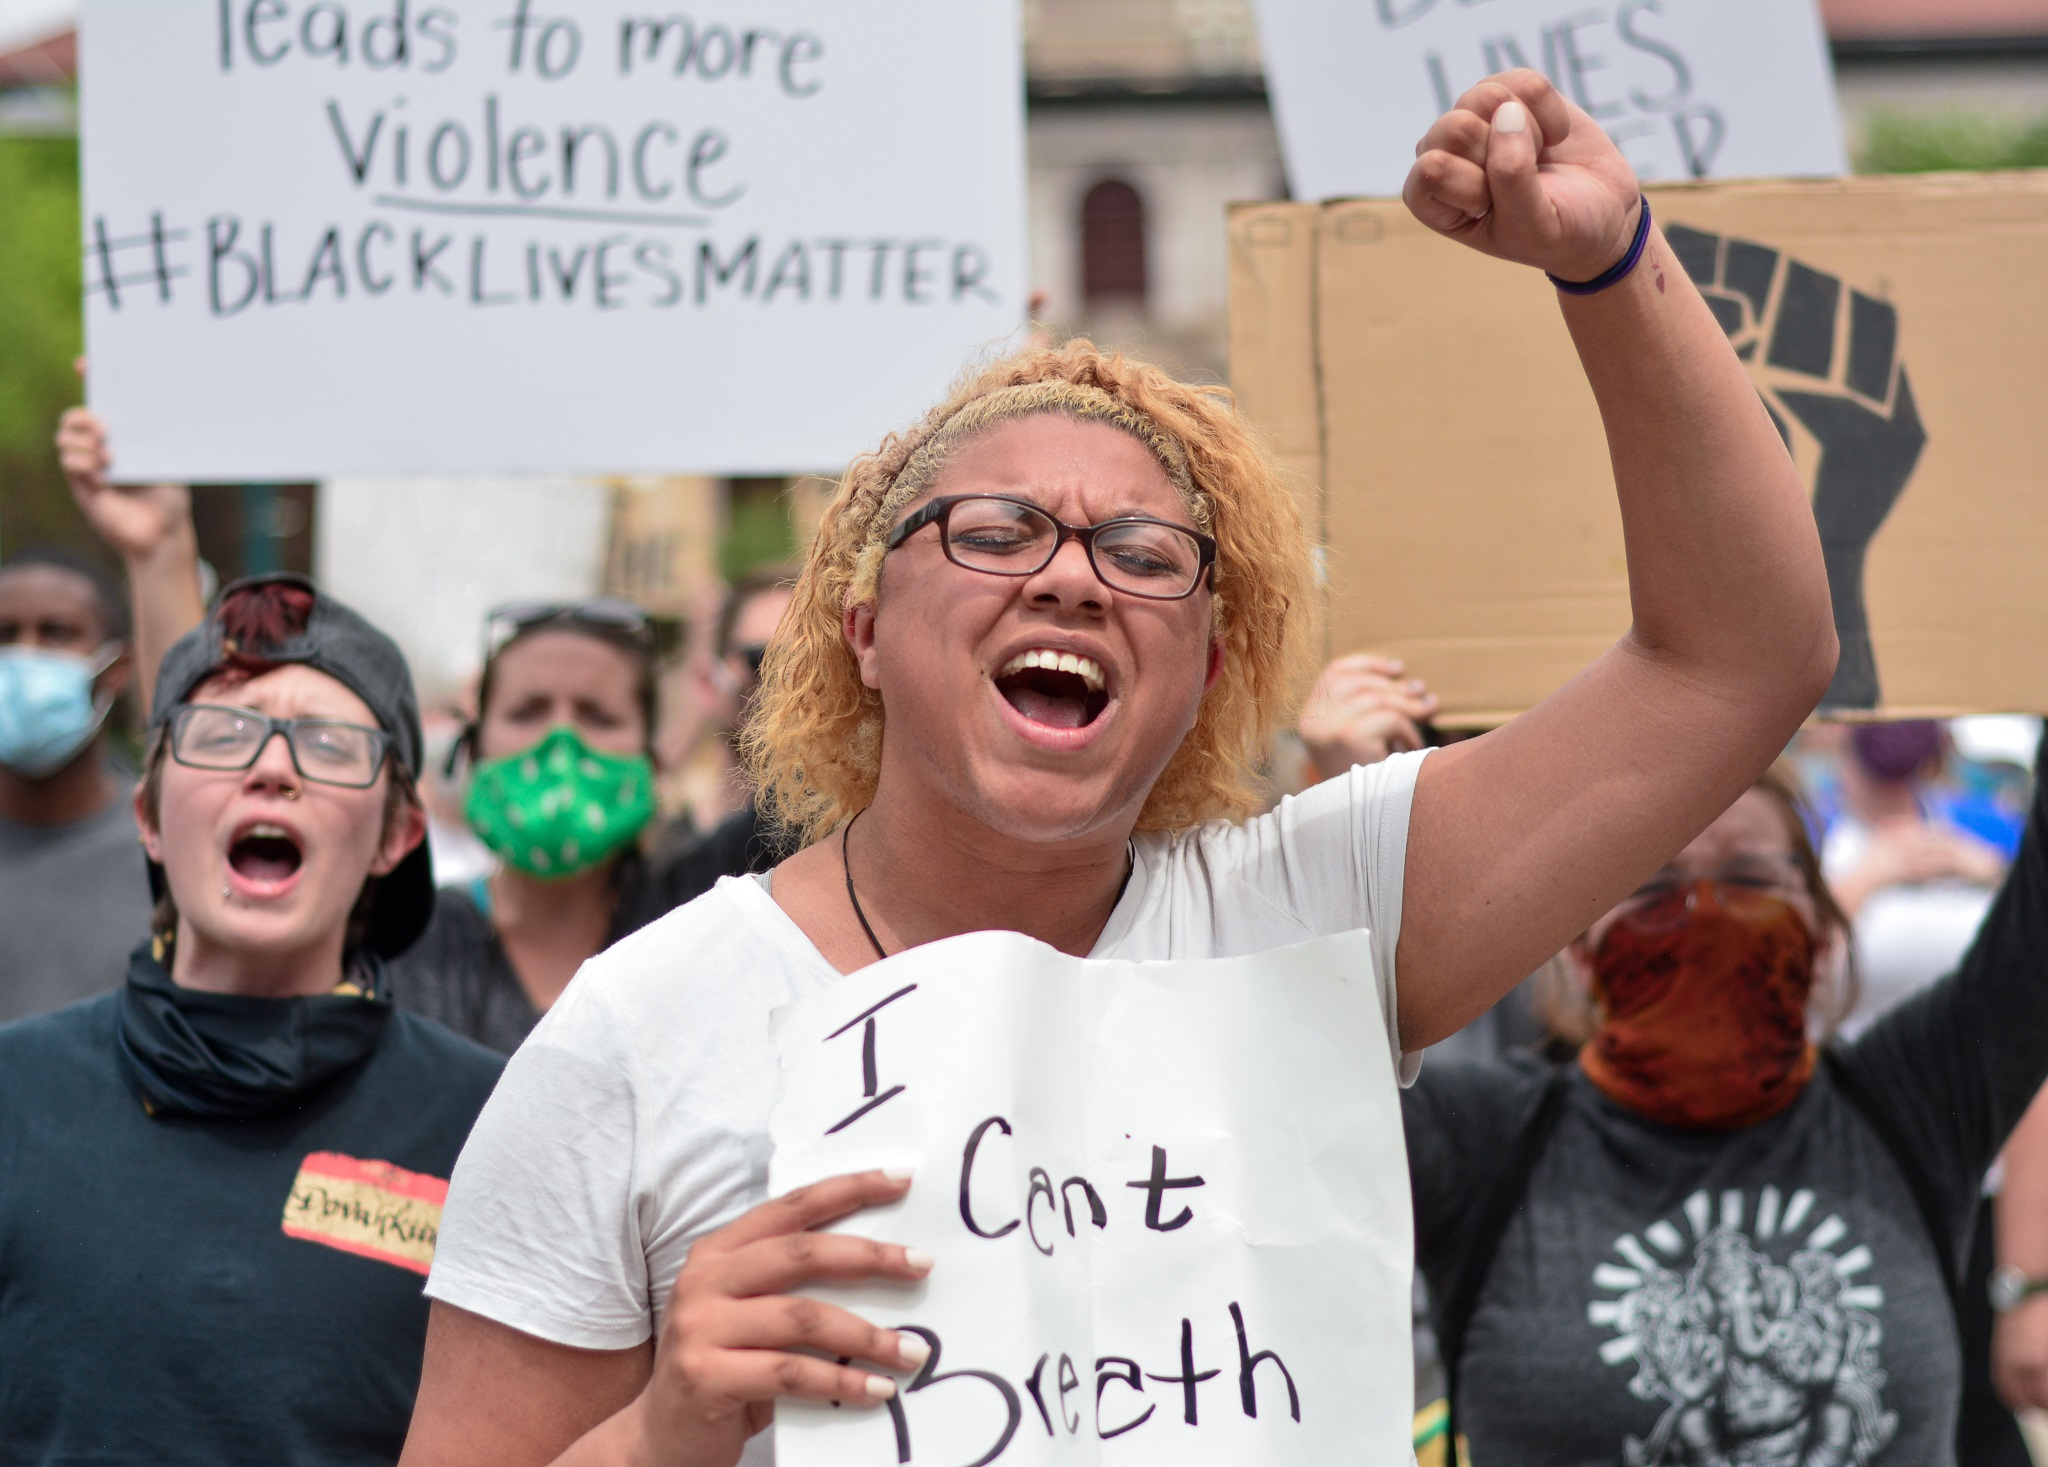 Protesters and activists voice their concerns in downtown Colorado Springs, CO on June 2, 2020 in reaction to the death of George Floyd. Several peaceful protesters marched and gathered in the downtown area, crossing streets as they marched.